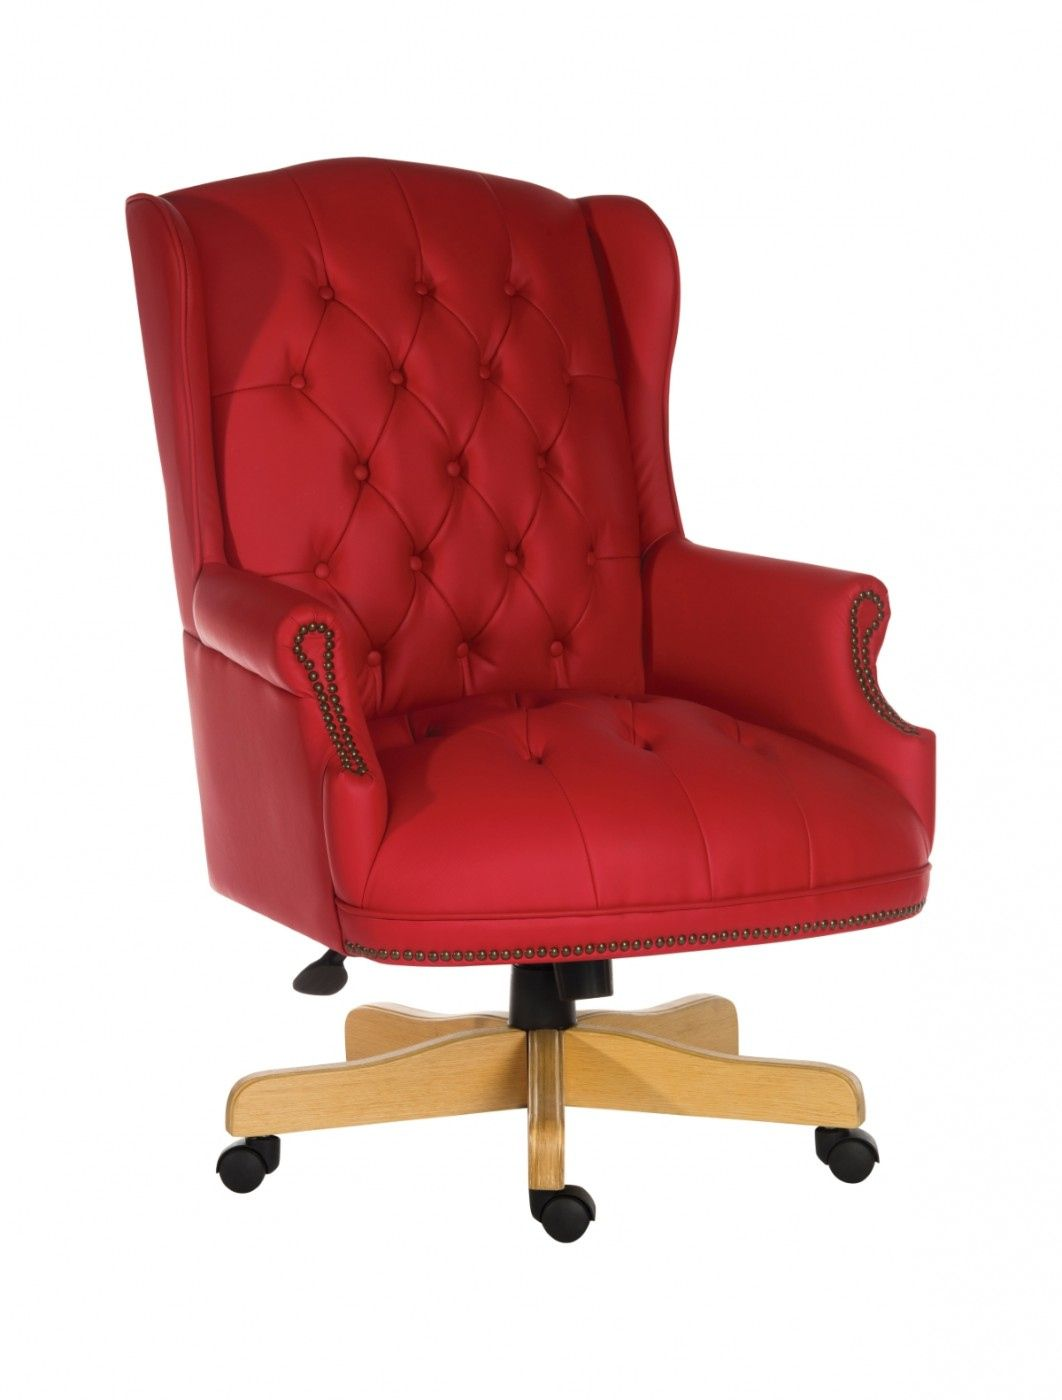 Marvelous 55+ Executive Leather Chair   Home Office Furniture Set Check More At Http:/ Ideas